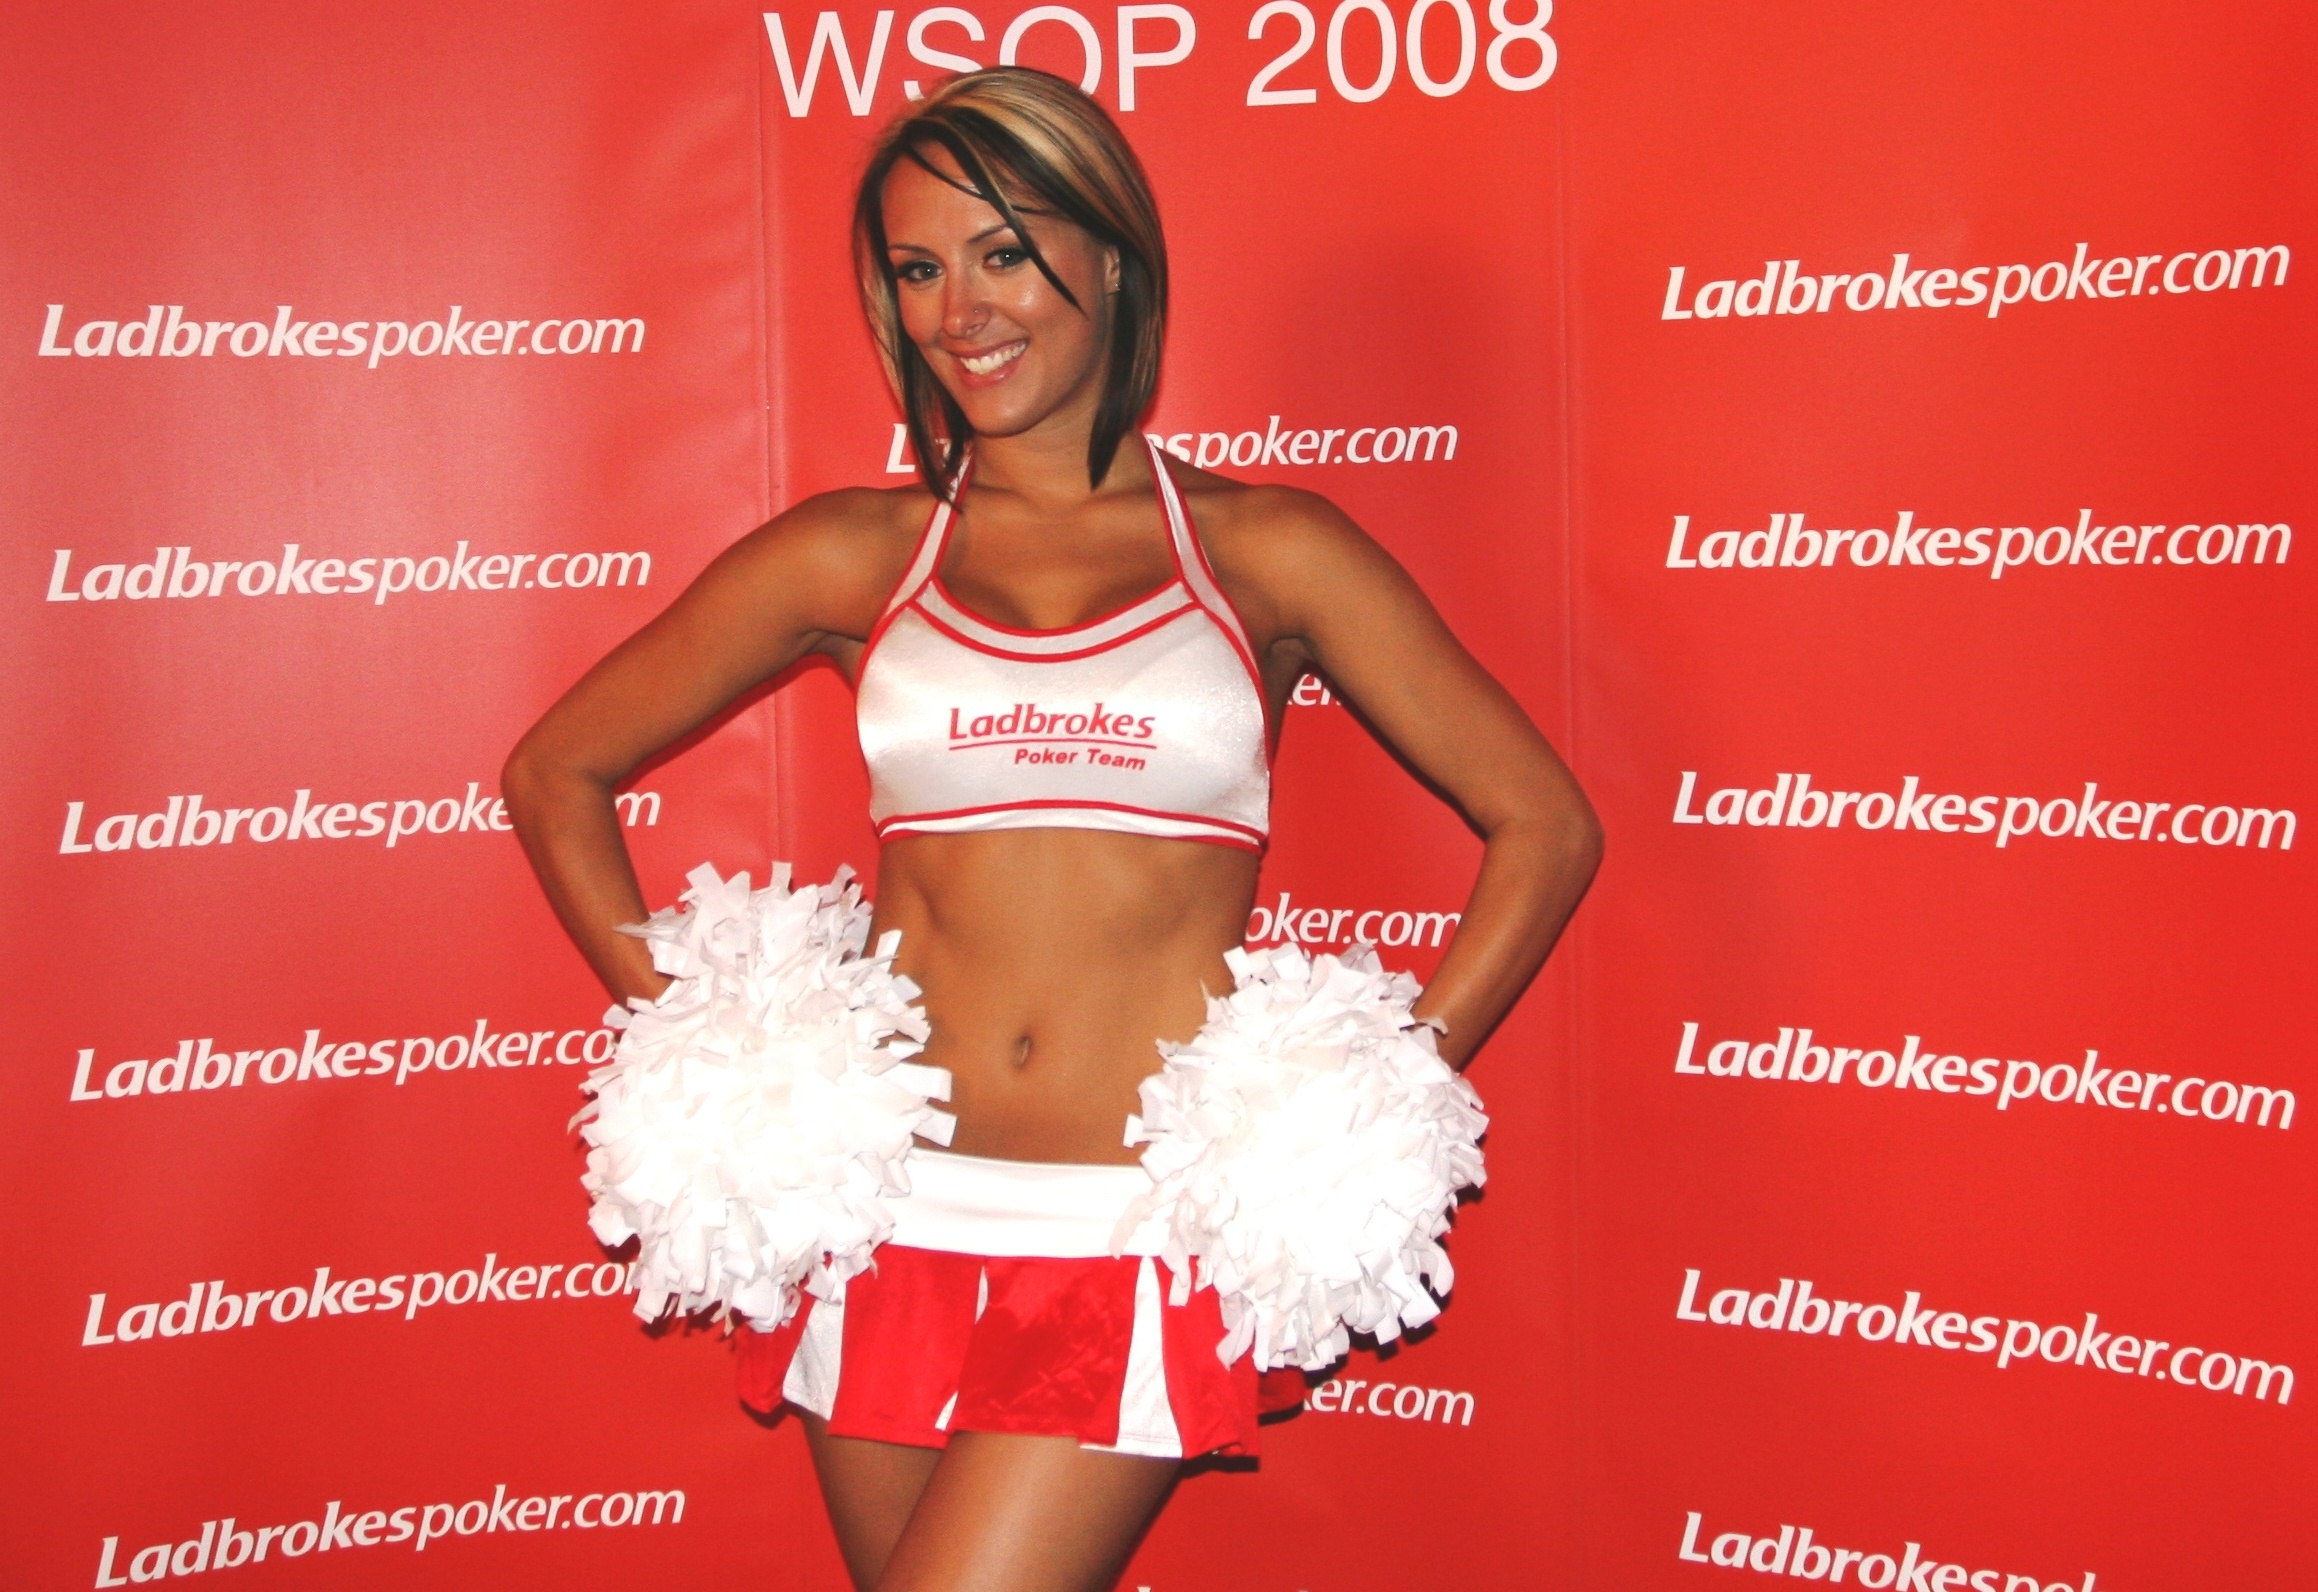 2277_Ladbrokes-Poker-Cheerleader